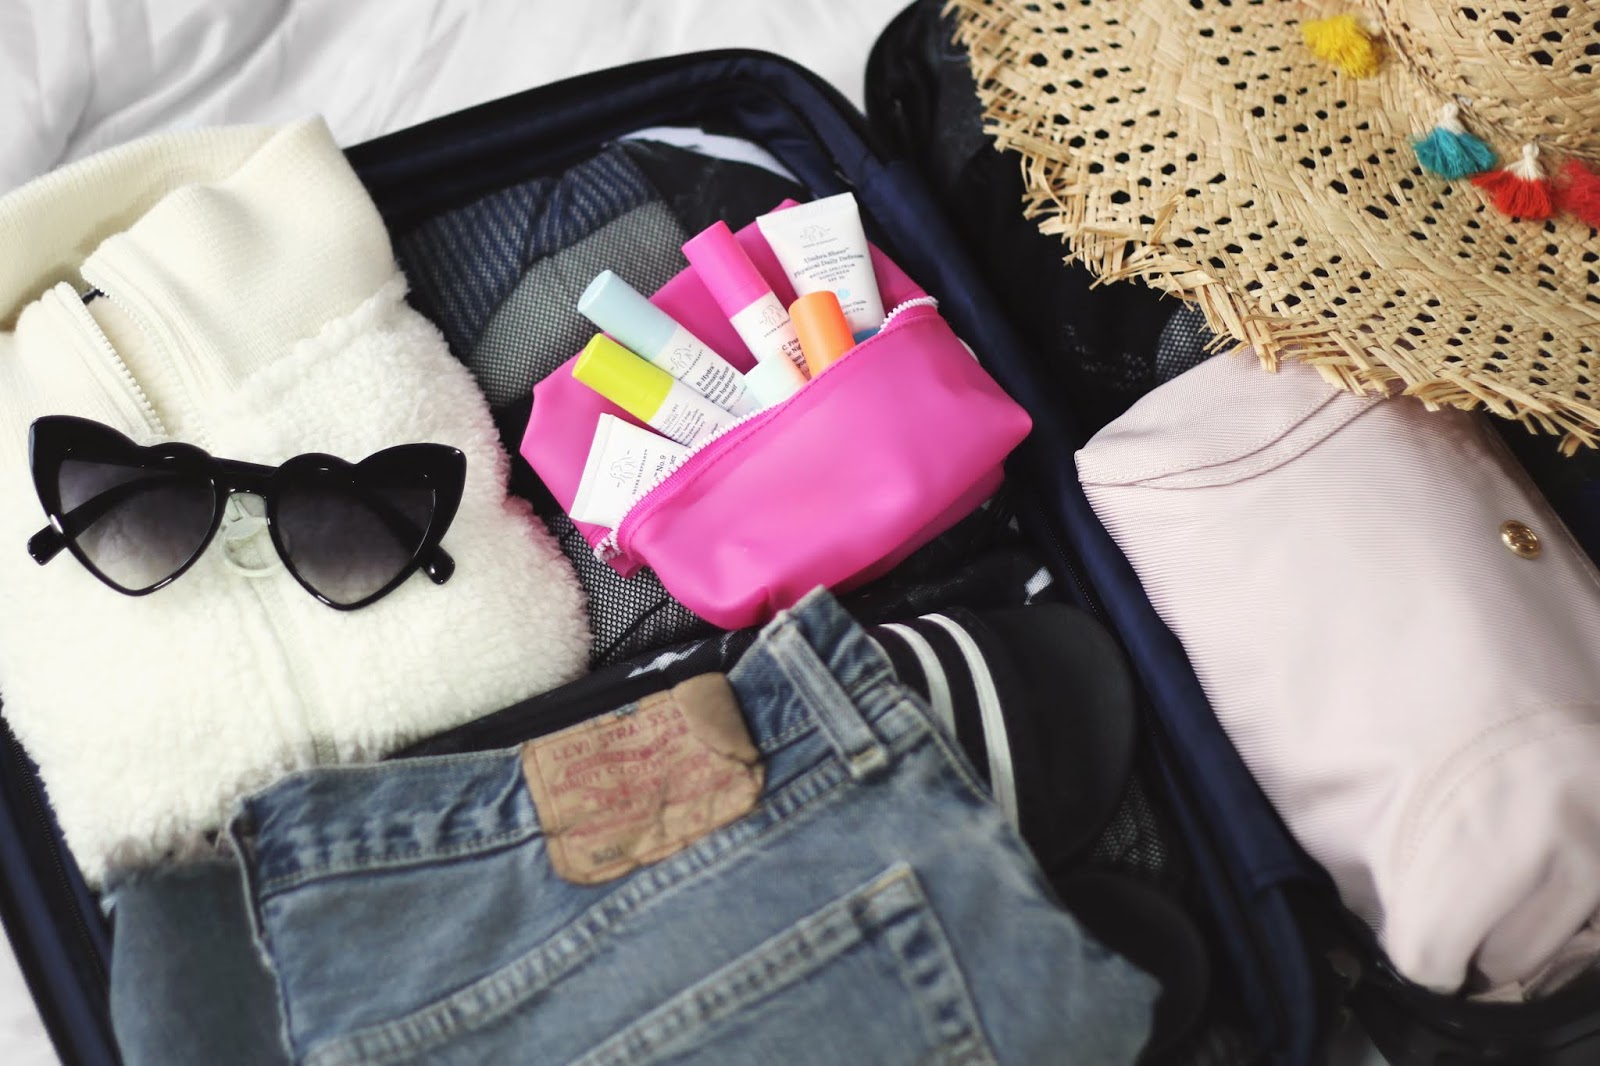 Open suitcase full of clothes, Louis Vuitton Neverfull Carry-on, Lands' End Clothing, Beach Clothing, Packing for Vacation, Beach Vacation Pack with Me, College Blogger, Lifestyle Blogger, Travel Blogger